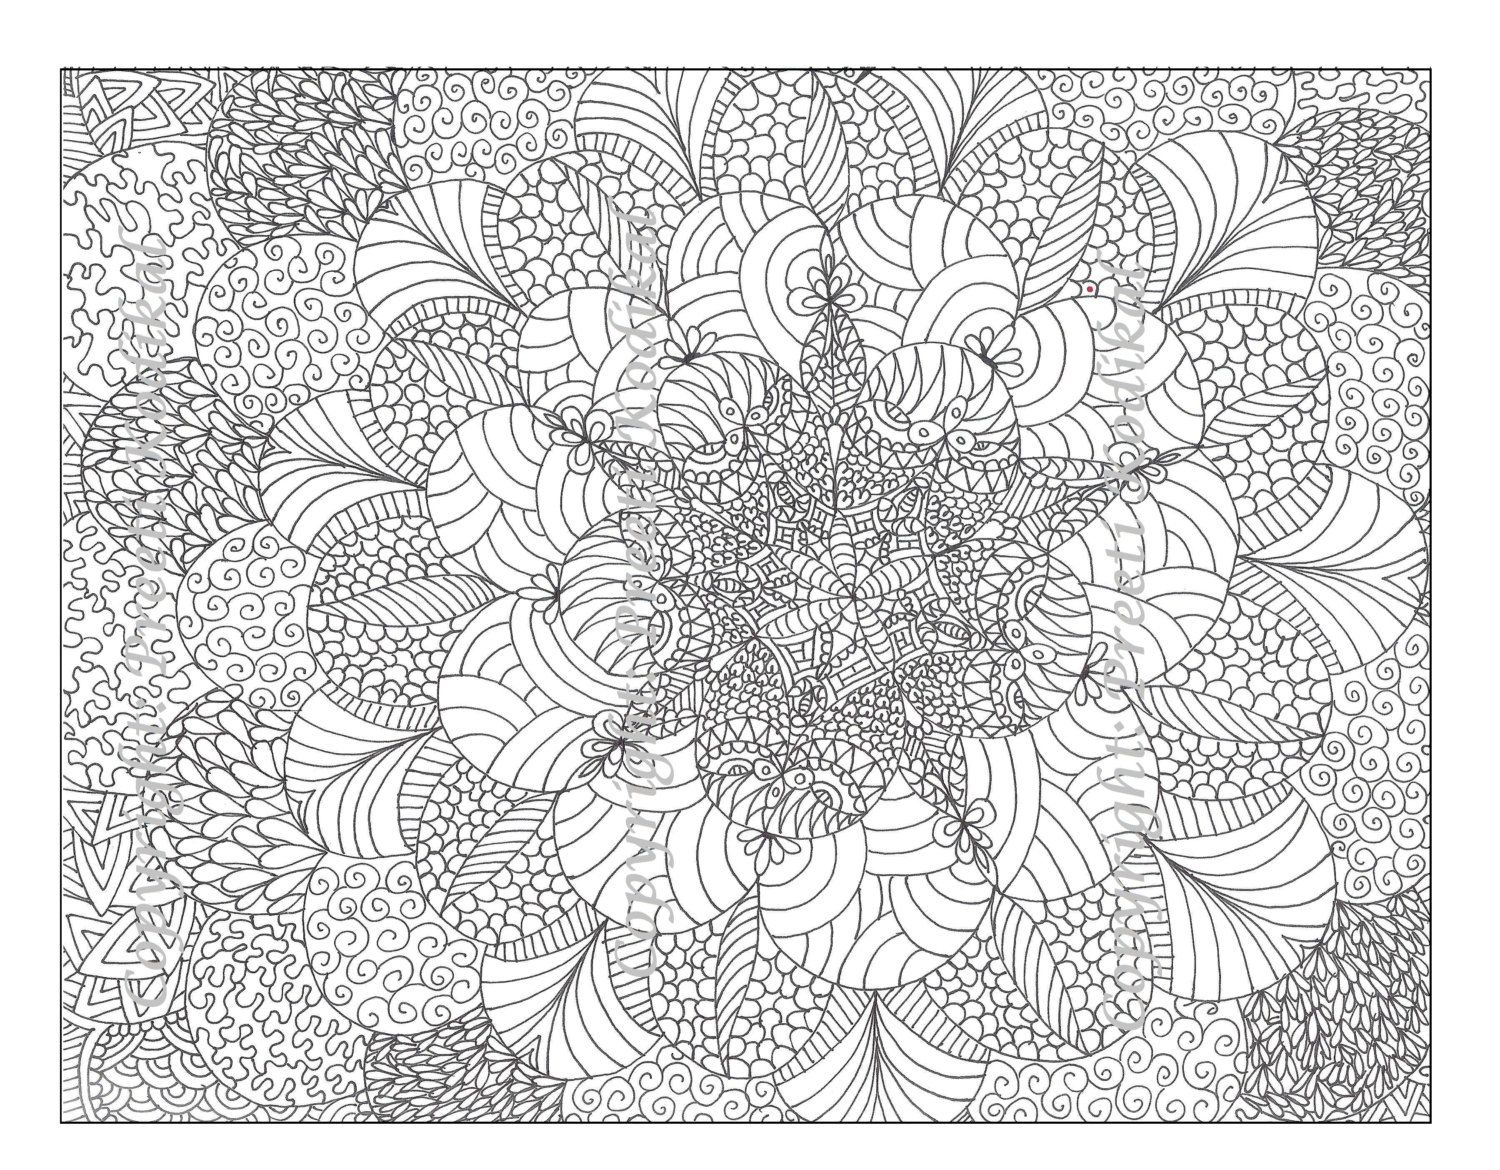 Coloring Pages For Adults Difficult - Coloring Home